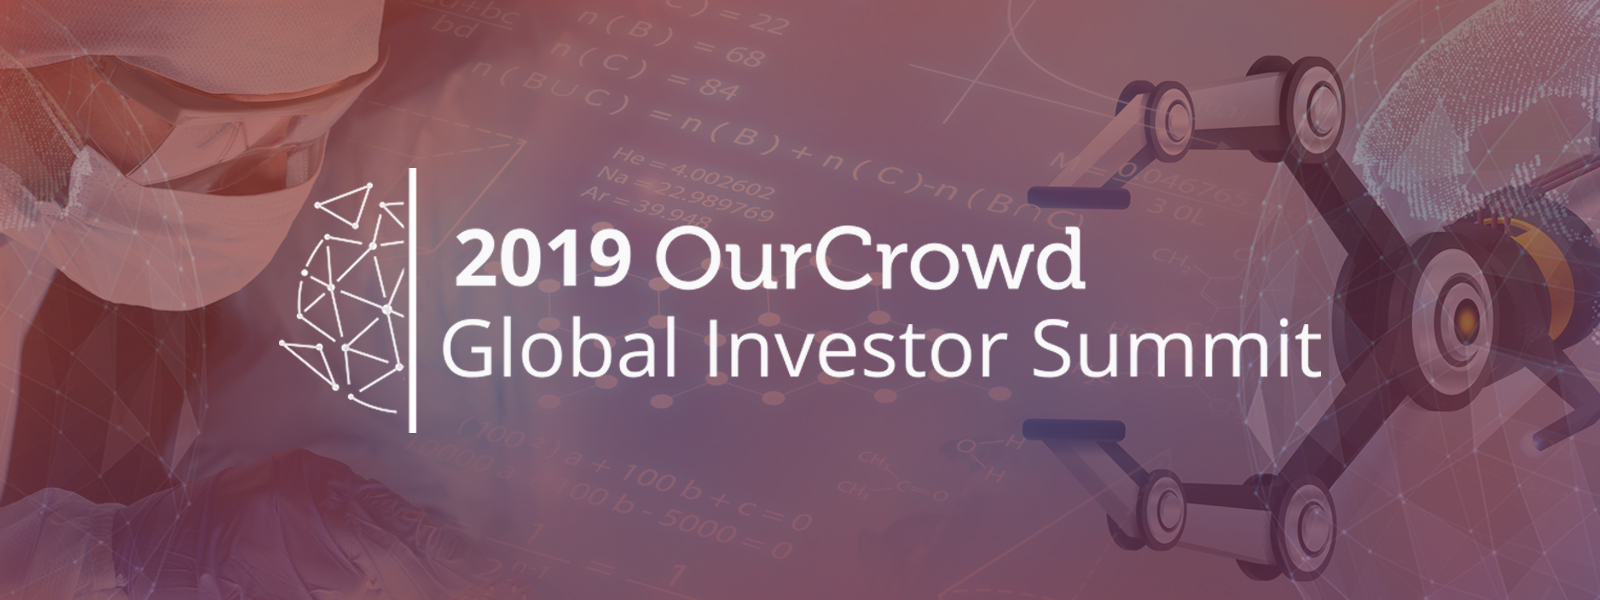 5 Reasons to Join Us at the OurCrowd Summit this March